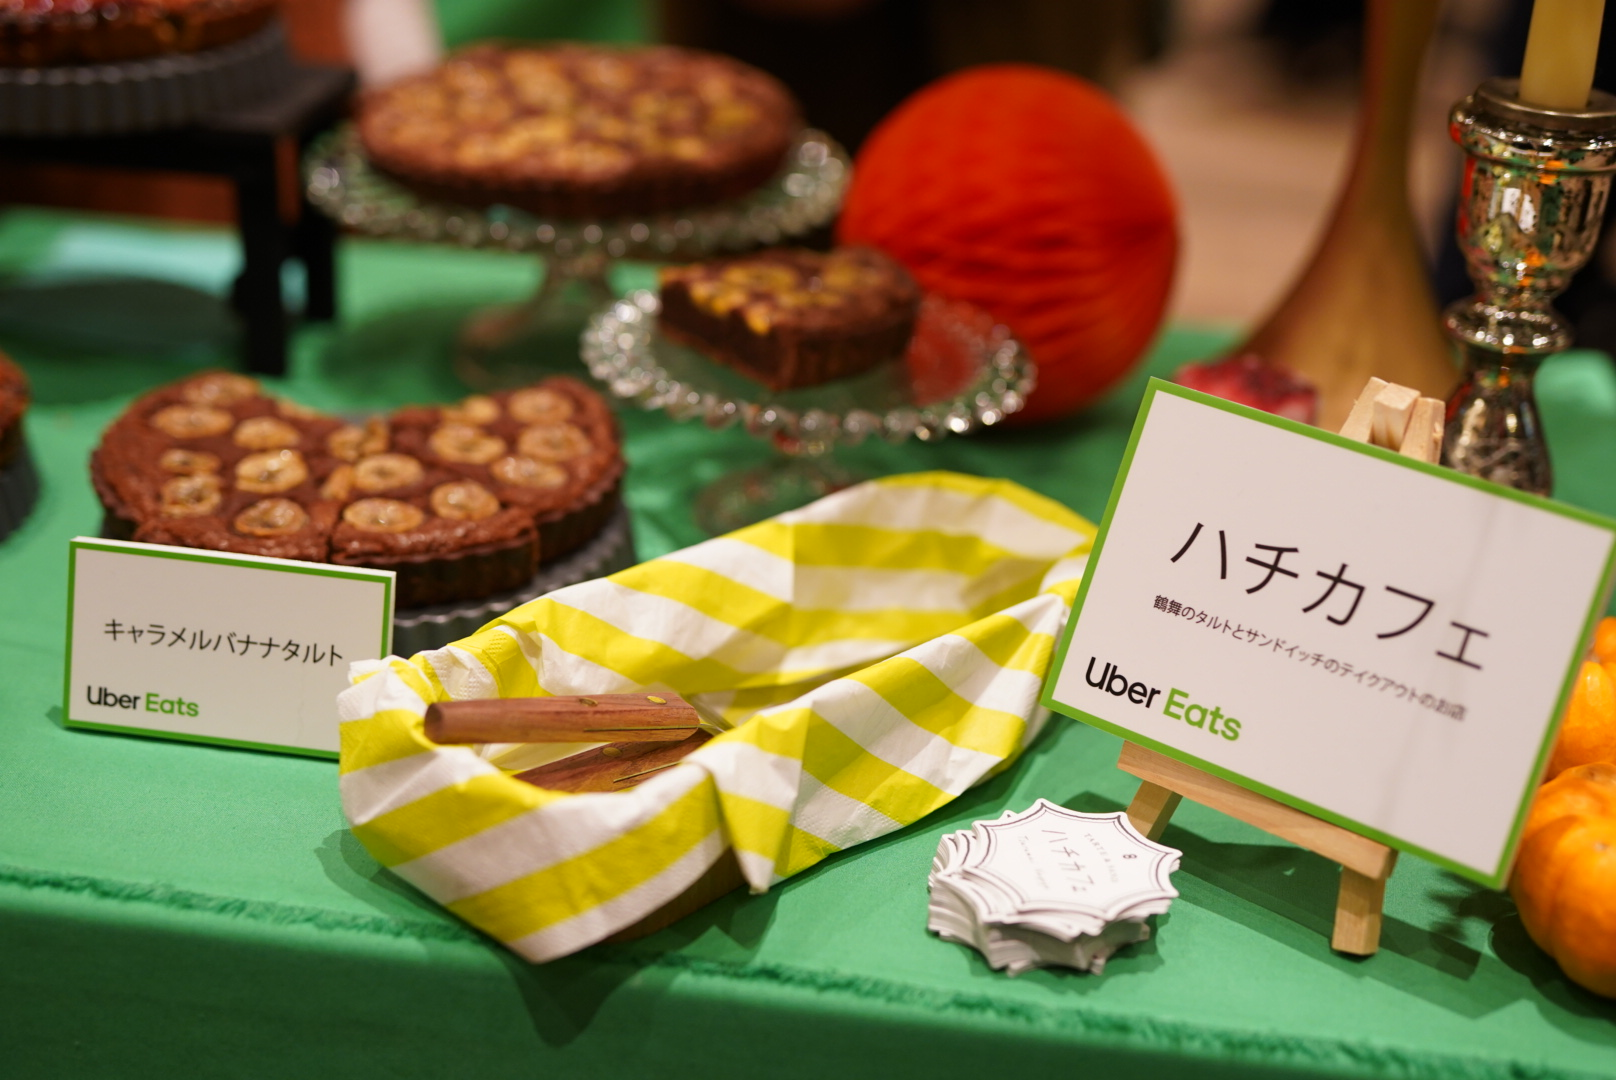 「Uber Eats 名古屋」が始動!ローンチパーティの様子を徹底レポート - 819426bfb4d772882787d75a6bde59eb